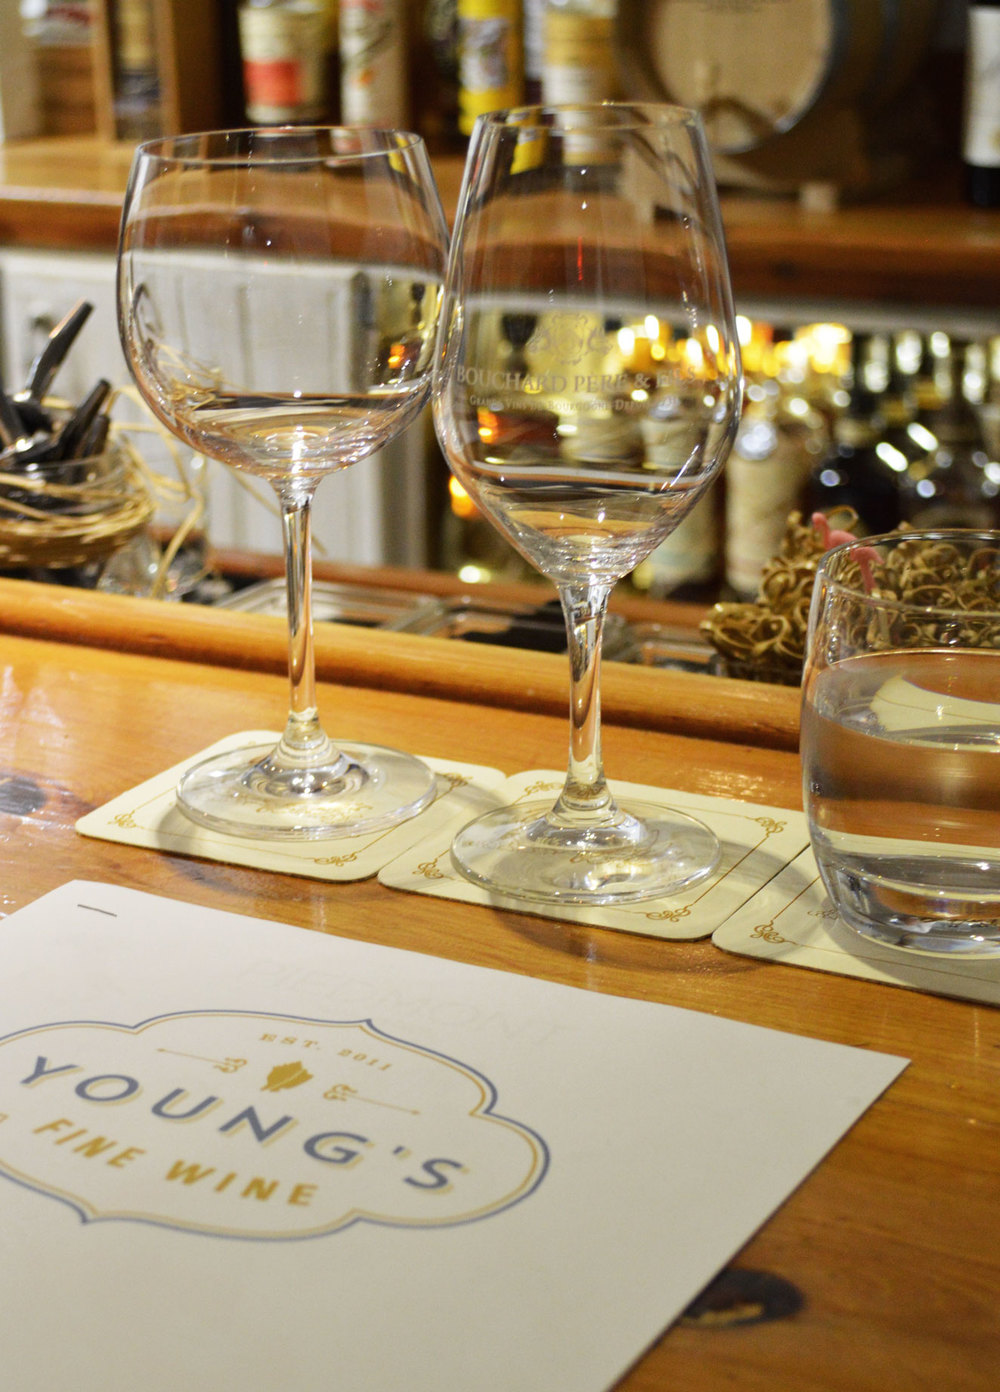 Youngs-Champagne-Fine-Wine-Sandyport-Nassau-Bahamas-Village-Tasting-Food-Blogger-Blog.jpeg